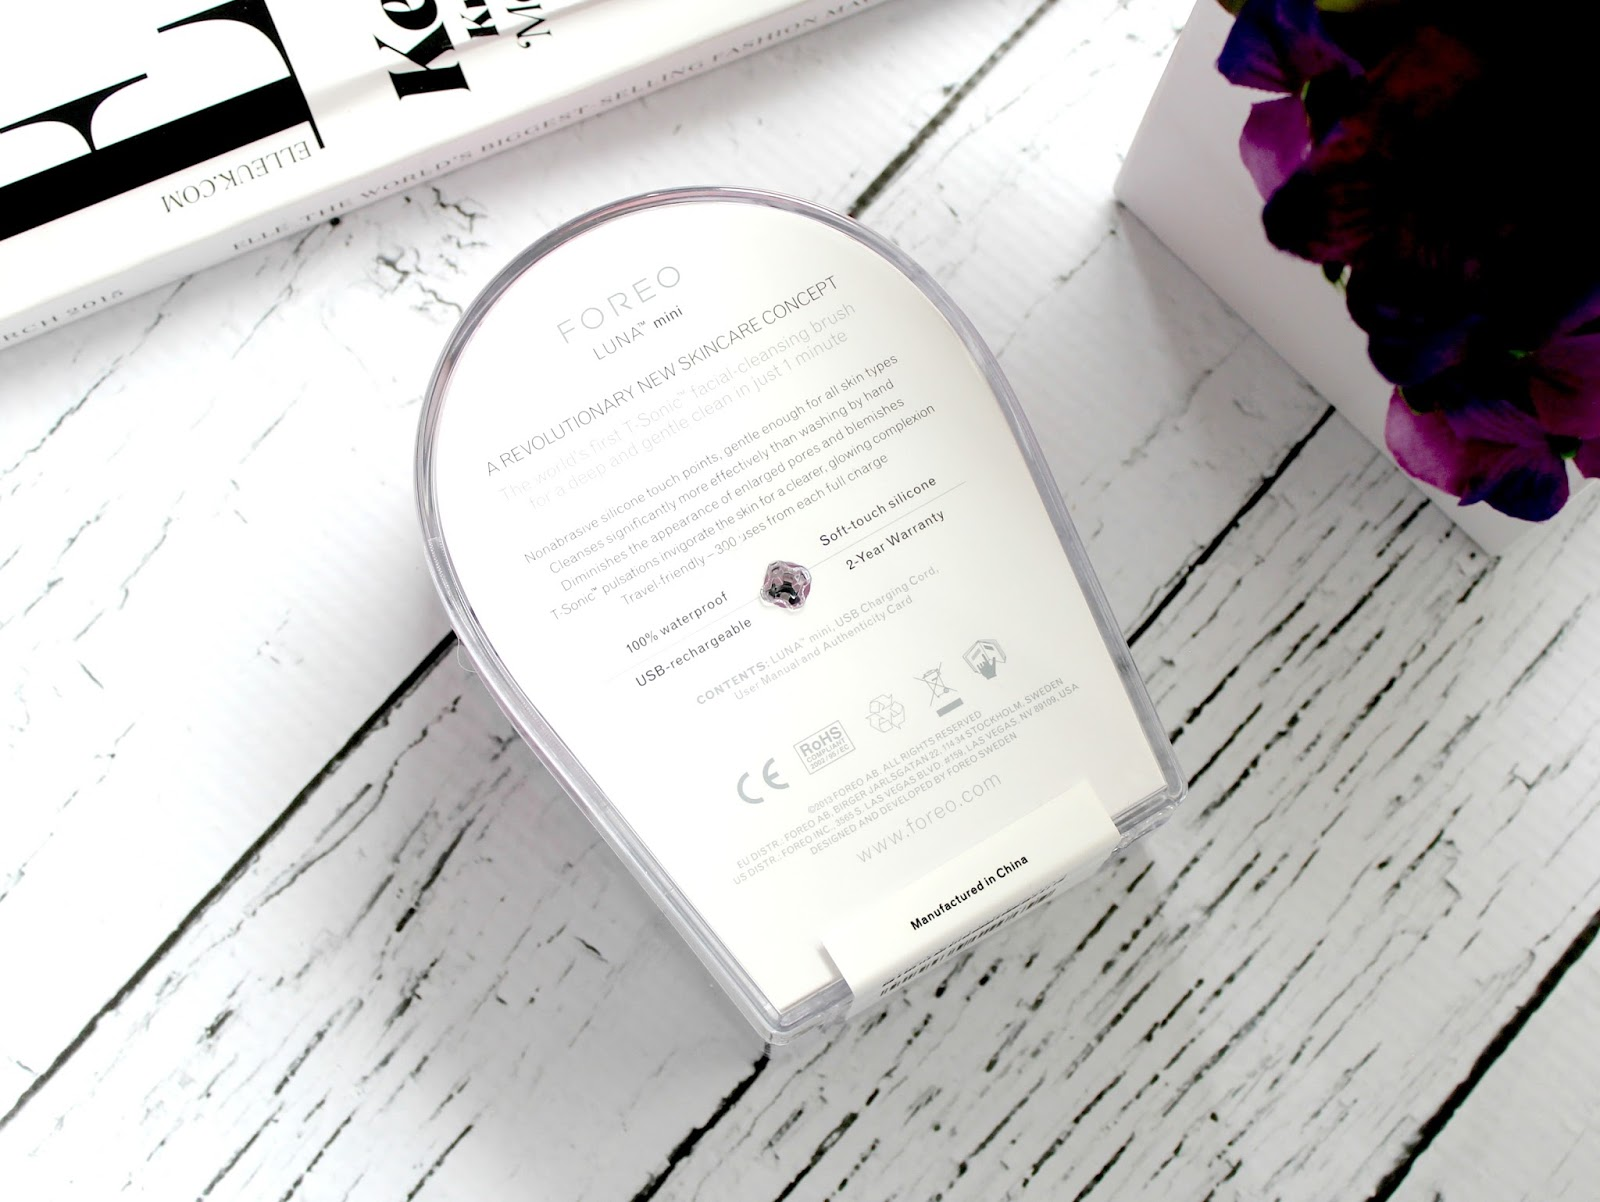 Foreo Luna Mini Review Couture Girl 2 So The First Thing I Have To Mention About Is Packaging Unlike Cleansing Brushes That Can Be Quite Bulky And Heavy